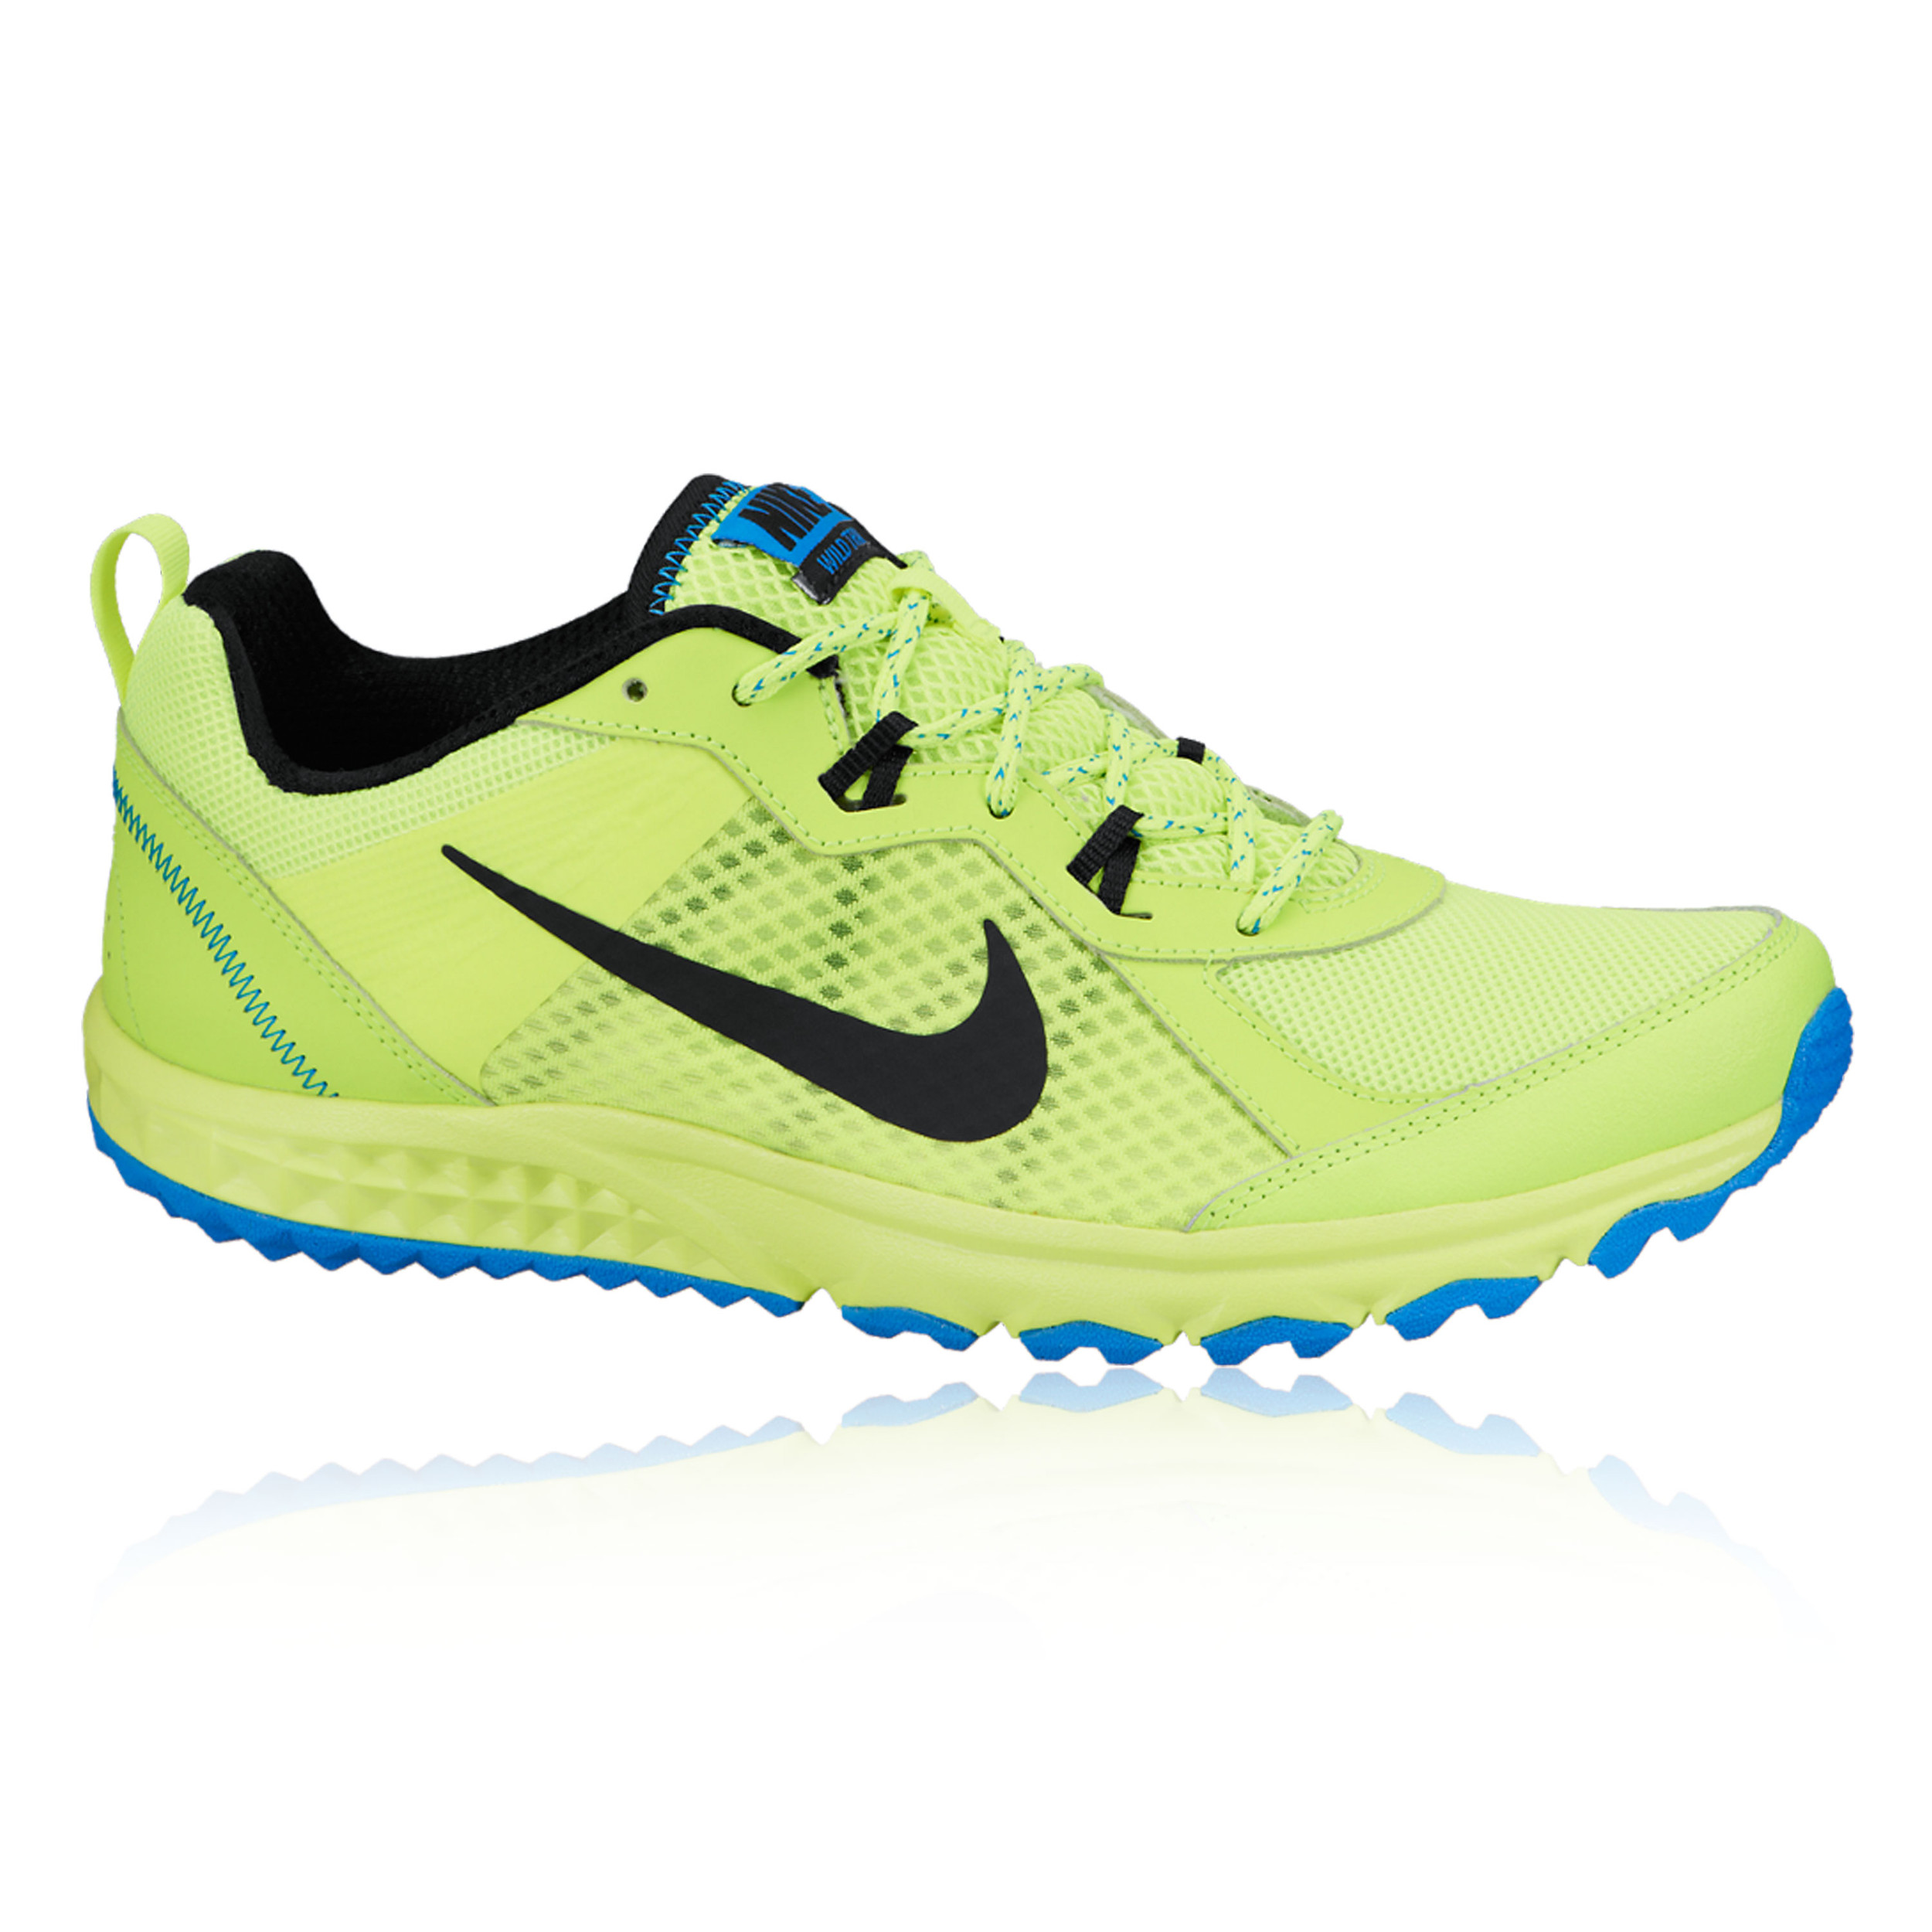 Fantastic Nike Air Alvord 10 Women39s Trail Running Shoes  50 Off  SportsShoes